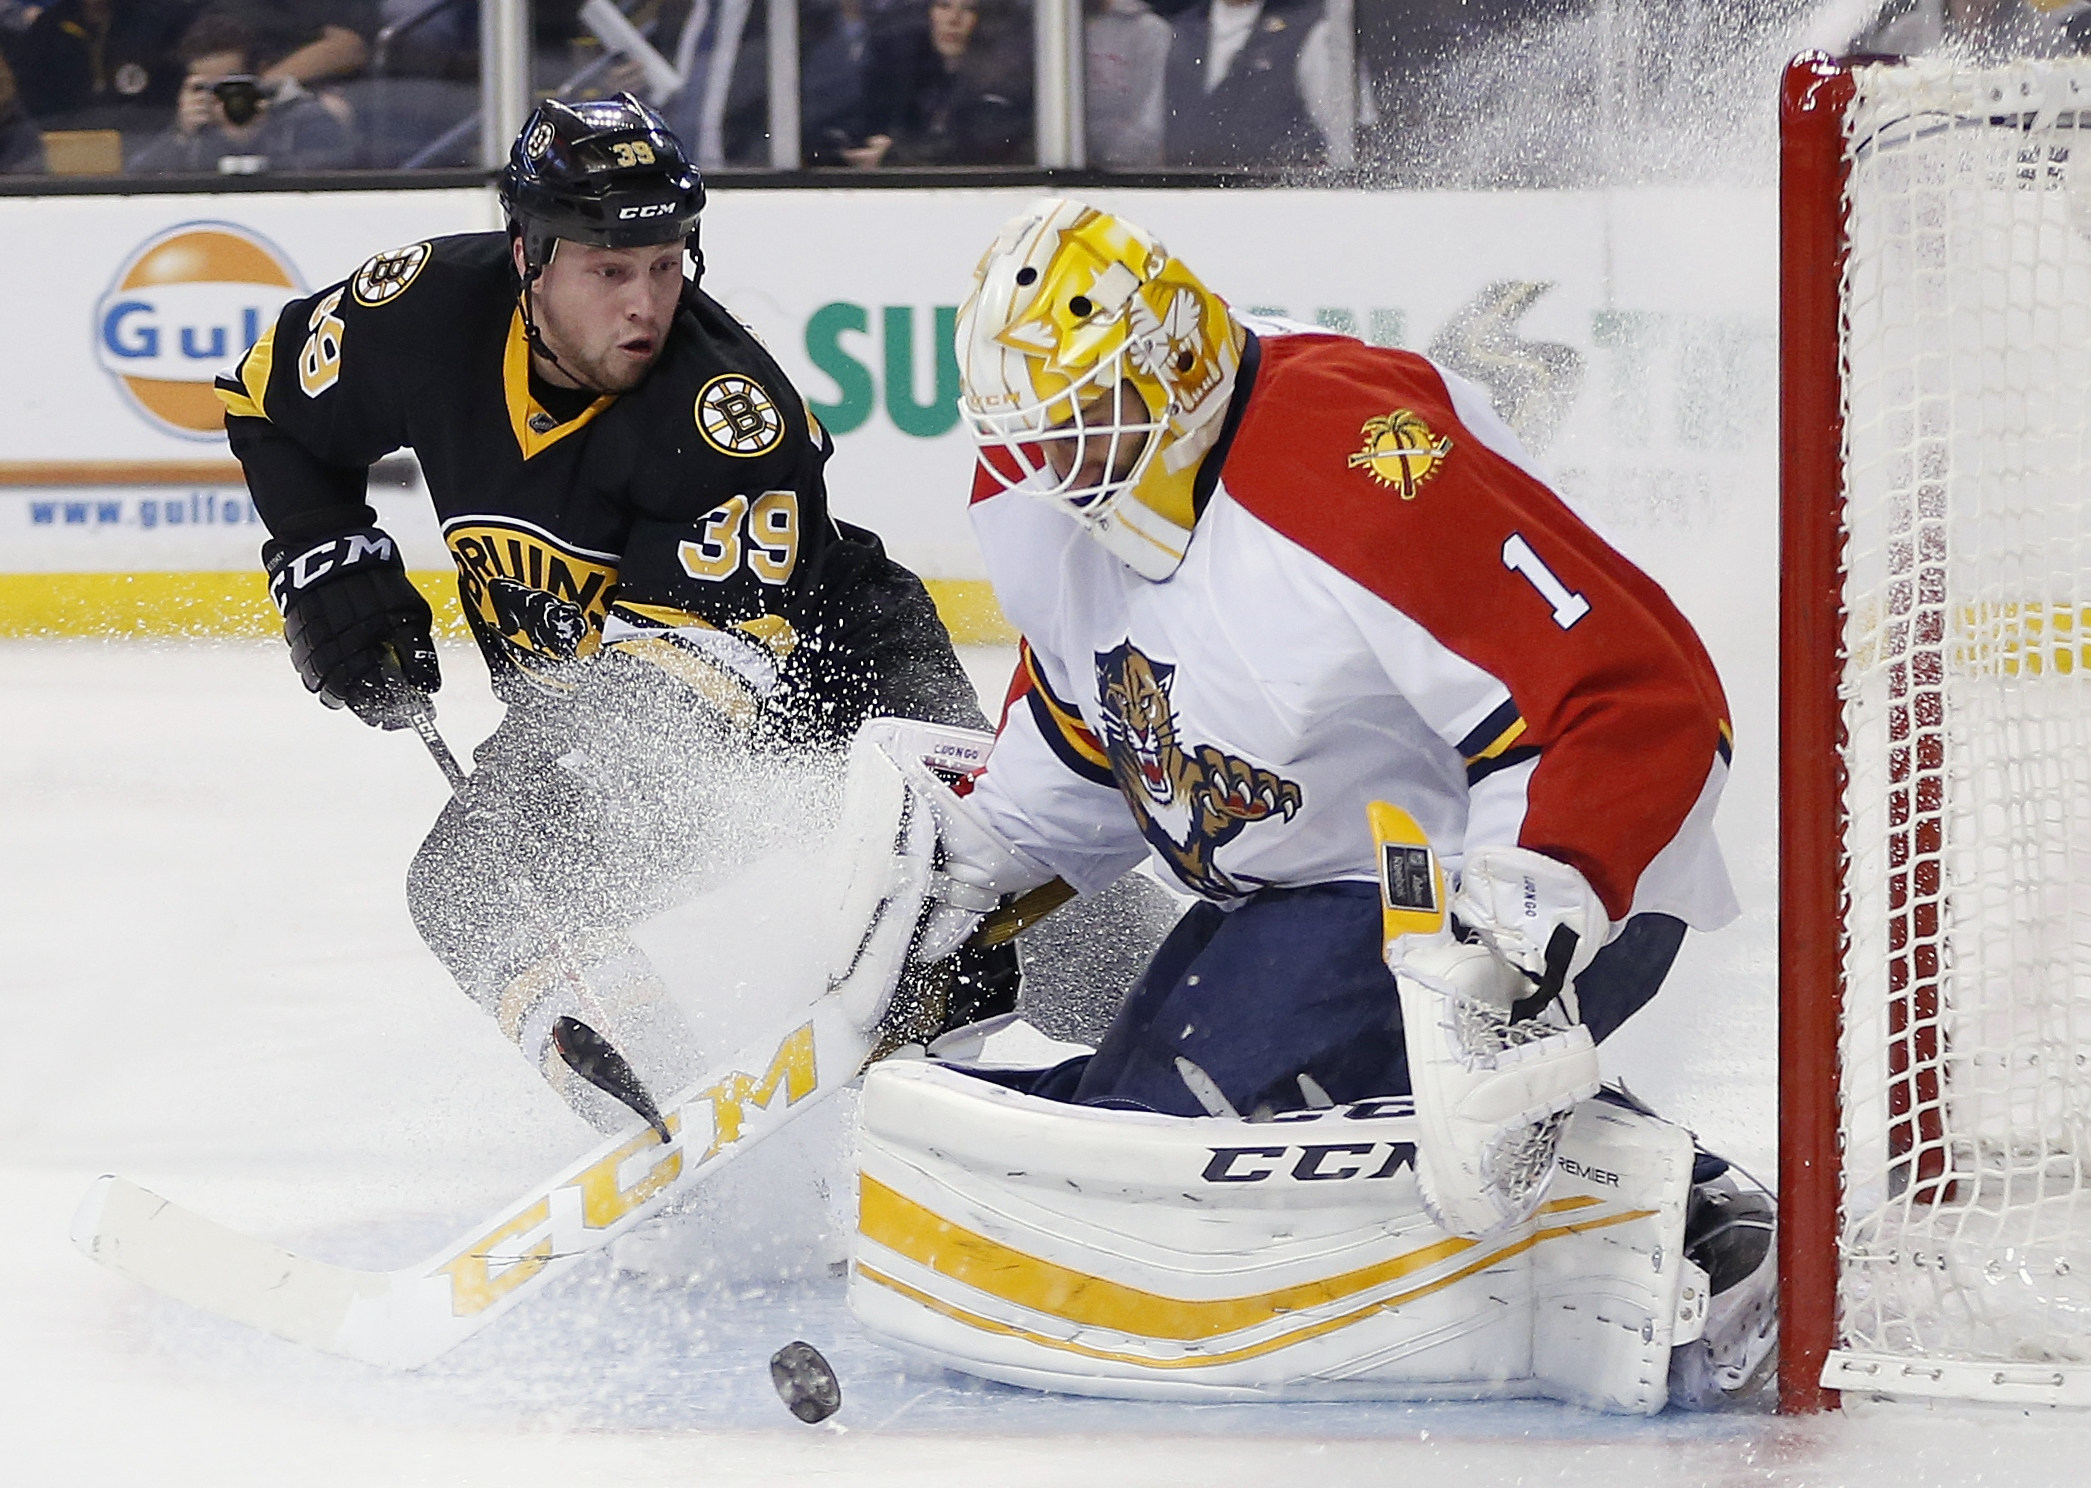 Boston Bruins' Matt Beleskey (39) looks for the rebound off Florida Panthers' Roberto Luongo (1) during the second period of an NHL hockey game in Boston, Saturday, Dec. 12, 2015. (AP Photo/Michael Dwyer)